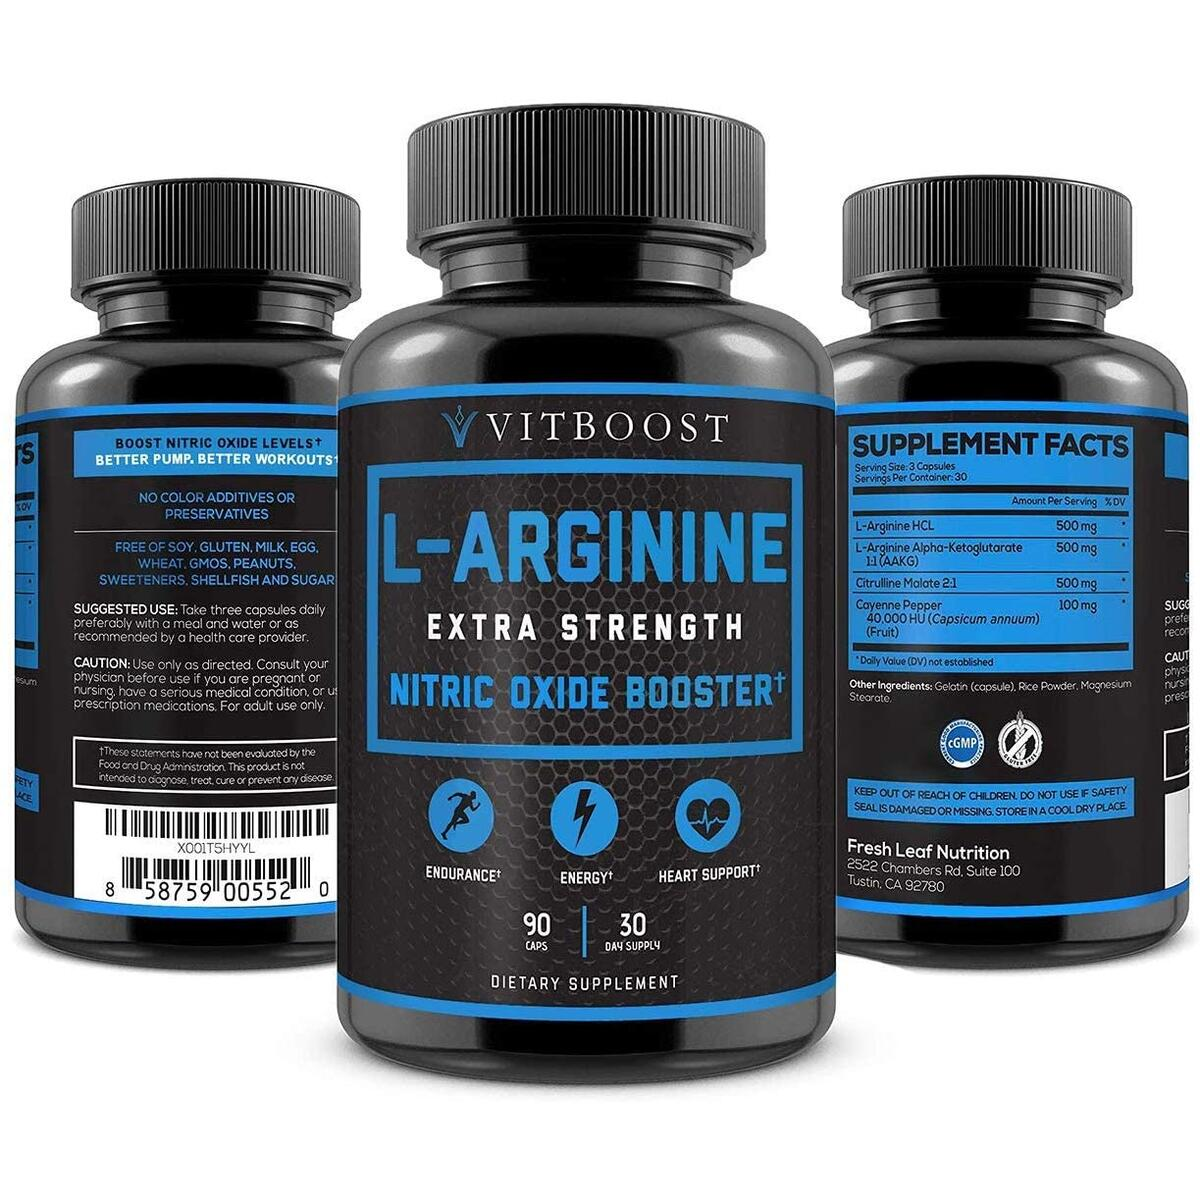 Extra Strength L Arginine 1500mg - Nitric Oxide Supplements for Stamina, Muscle, Vascularity & Energy - Powerful NO Booster with L-Arginine, L-Citrulline & Essential Amino Acids